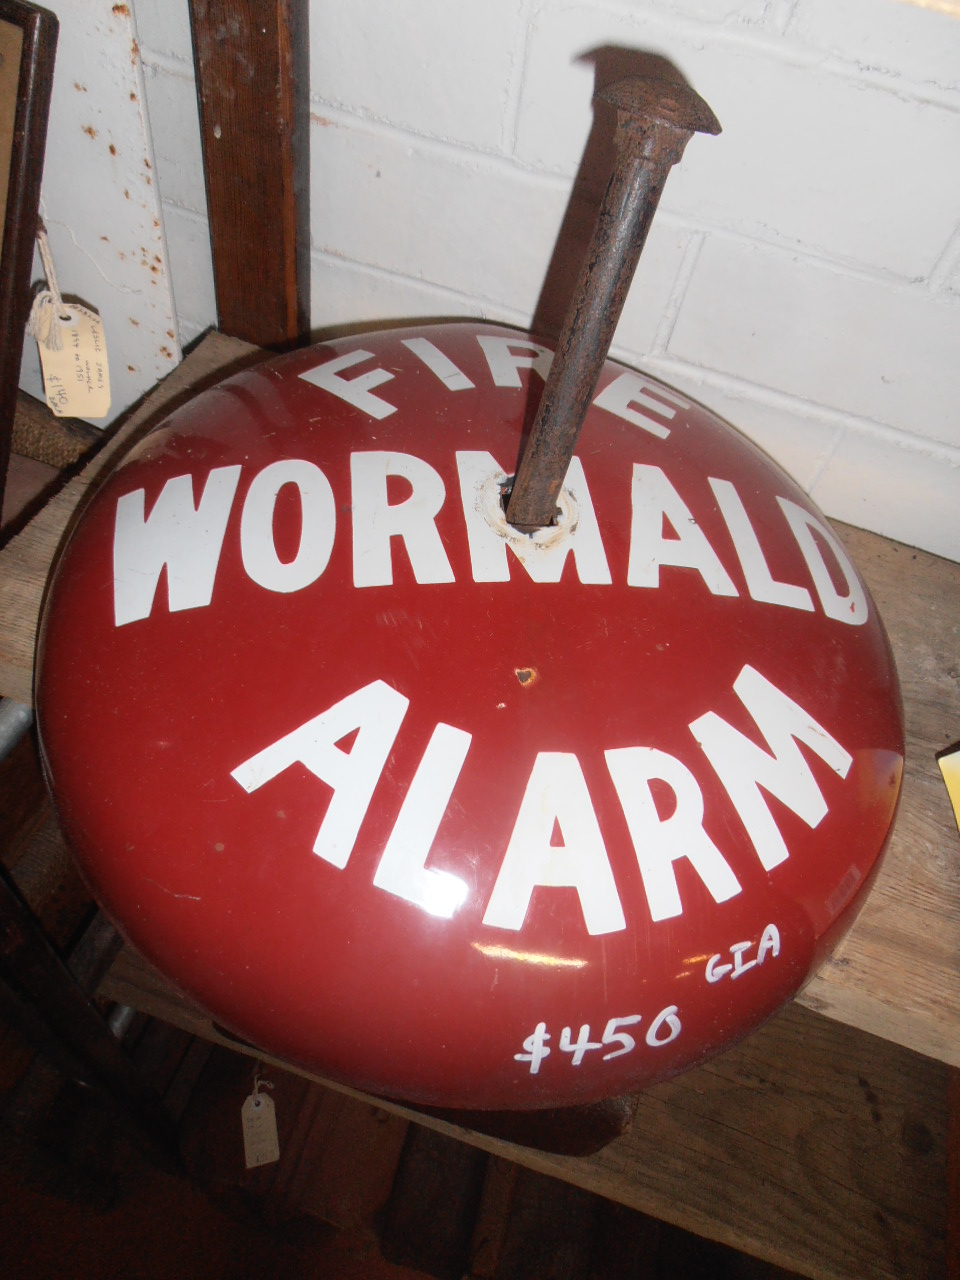 HEATHS OLD WARES COLLECTABLES AND INDUSTRIAL ANTIQUES 19-21 Broadway Burringbar NSW 2483 Open 7 days Ph: 0266771181